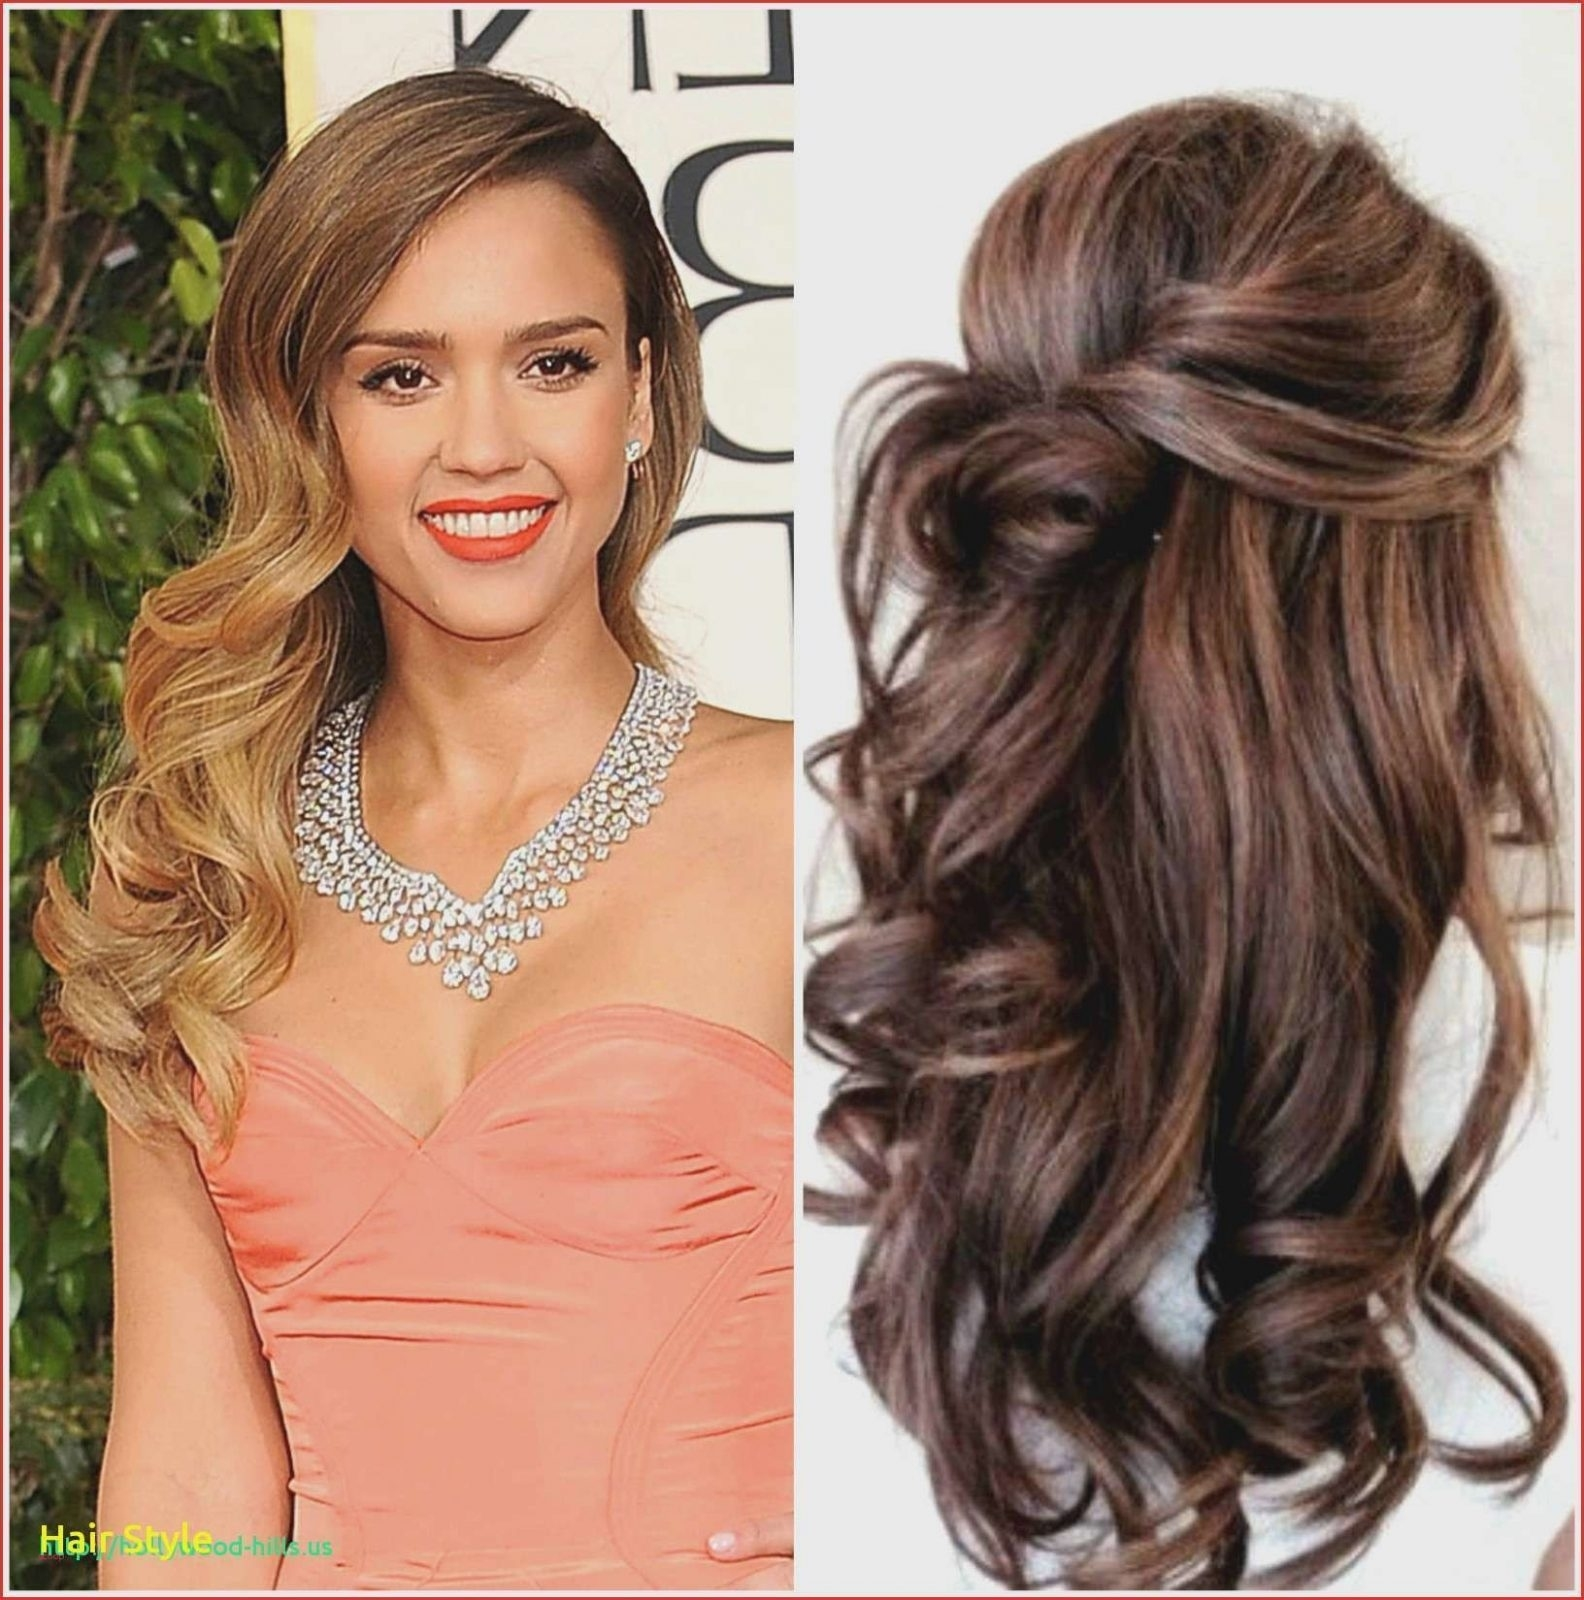 Asian Wedding Hairstyles For Long Hair Awesome Asian Wedding throughout Superb Asian Bridal Hairstyles For Long Hair